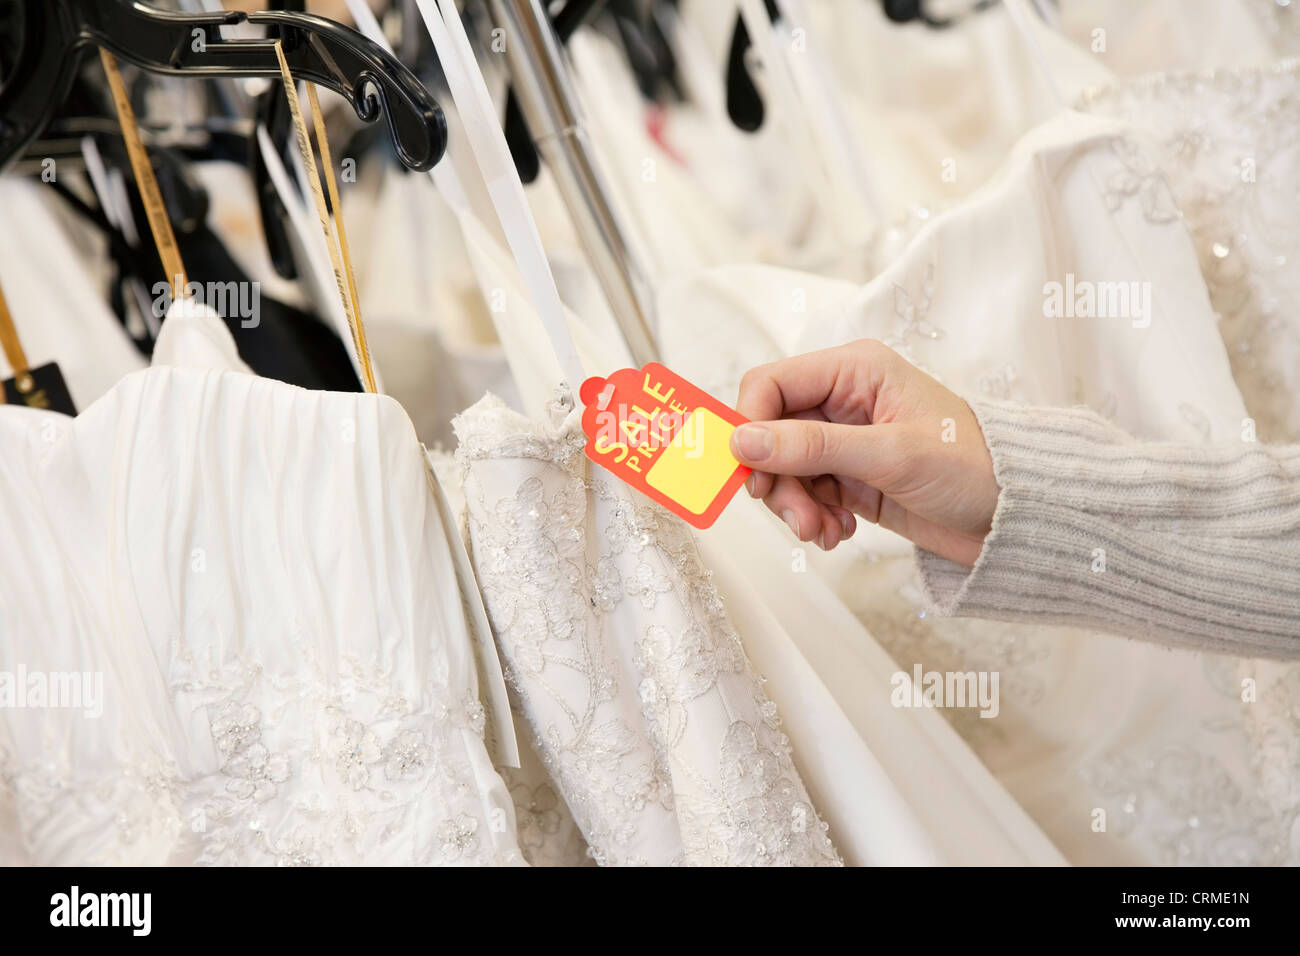 Cropped shot of female hands holding price tag attached to wedding gown in bridal boutique - Stock Image